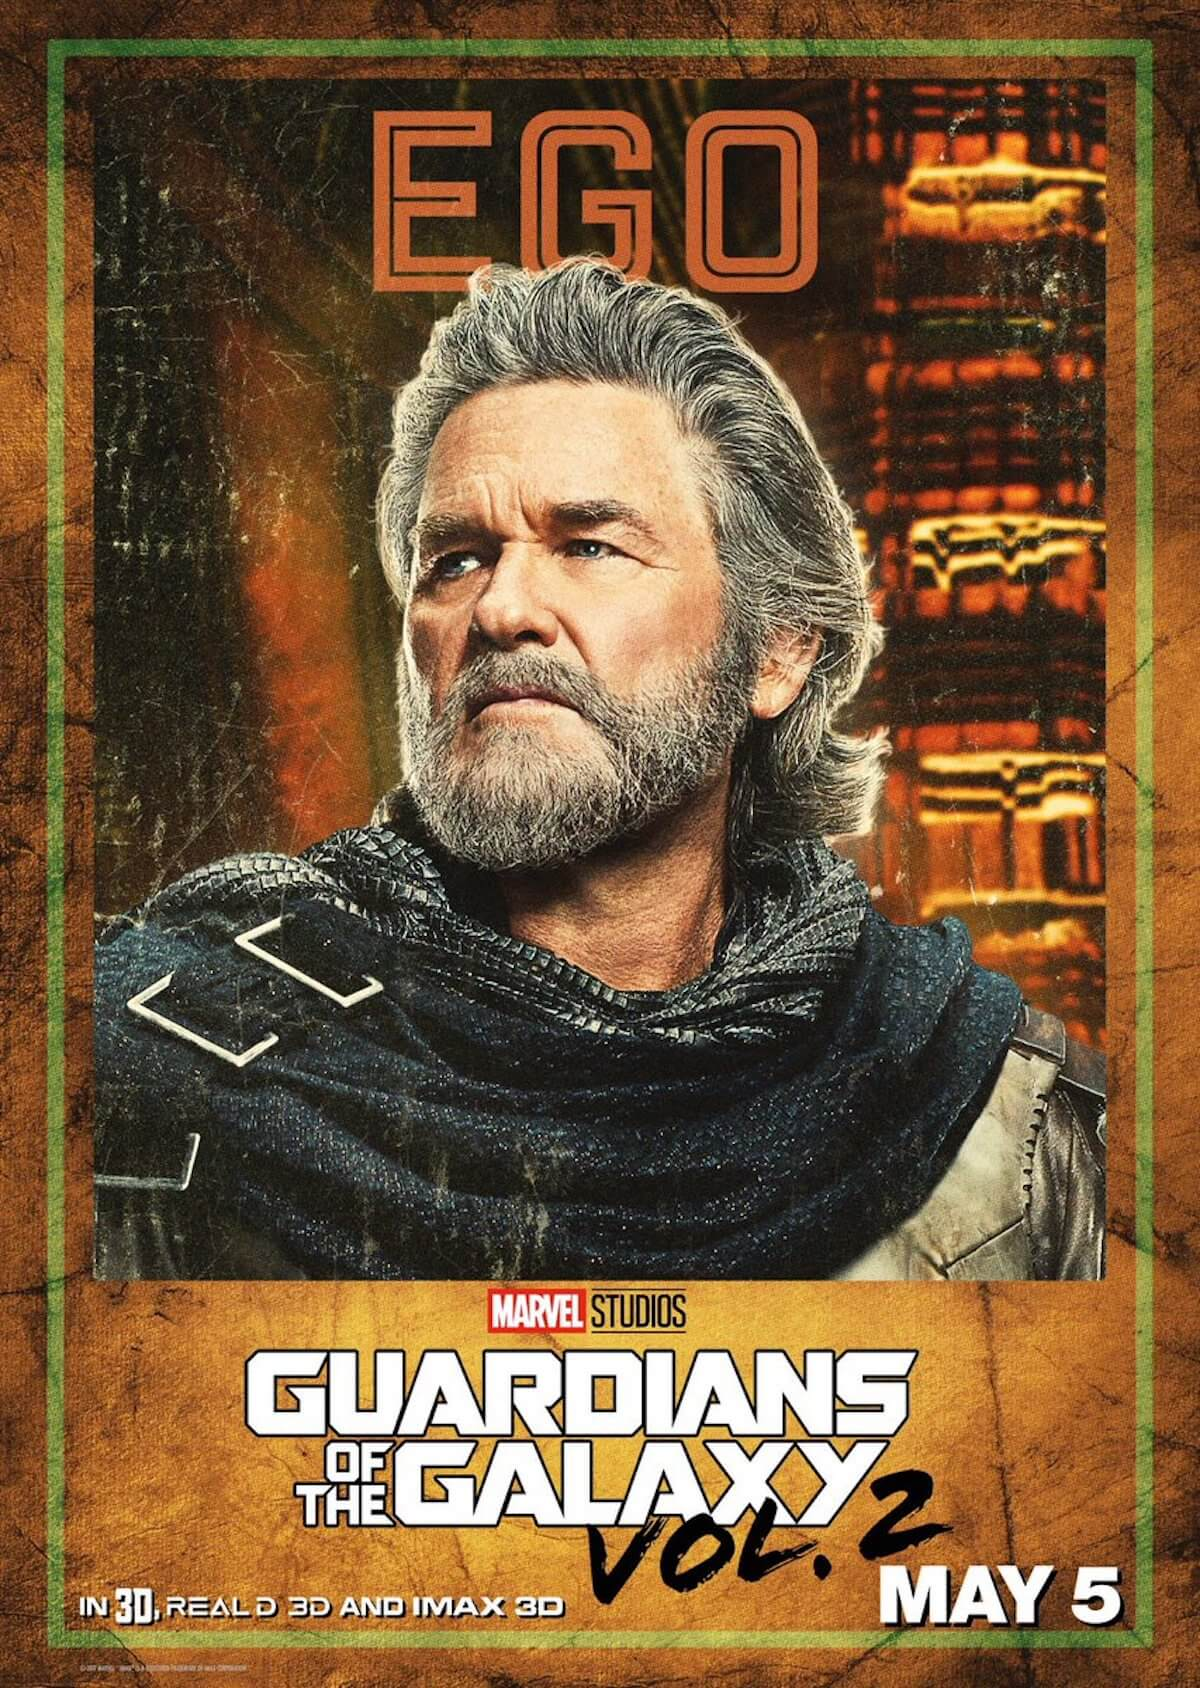 Guardians of the galaxy 2 poster ego kurt russell